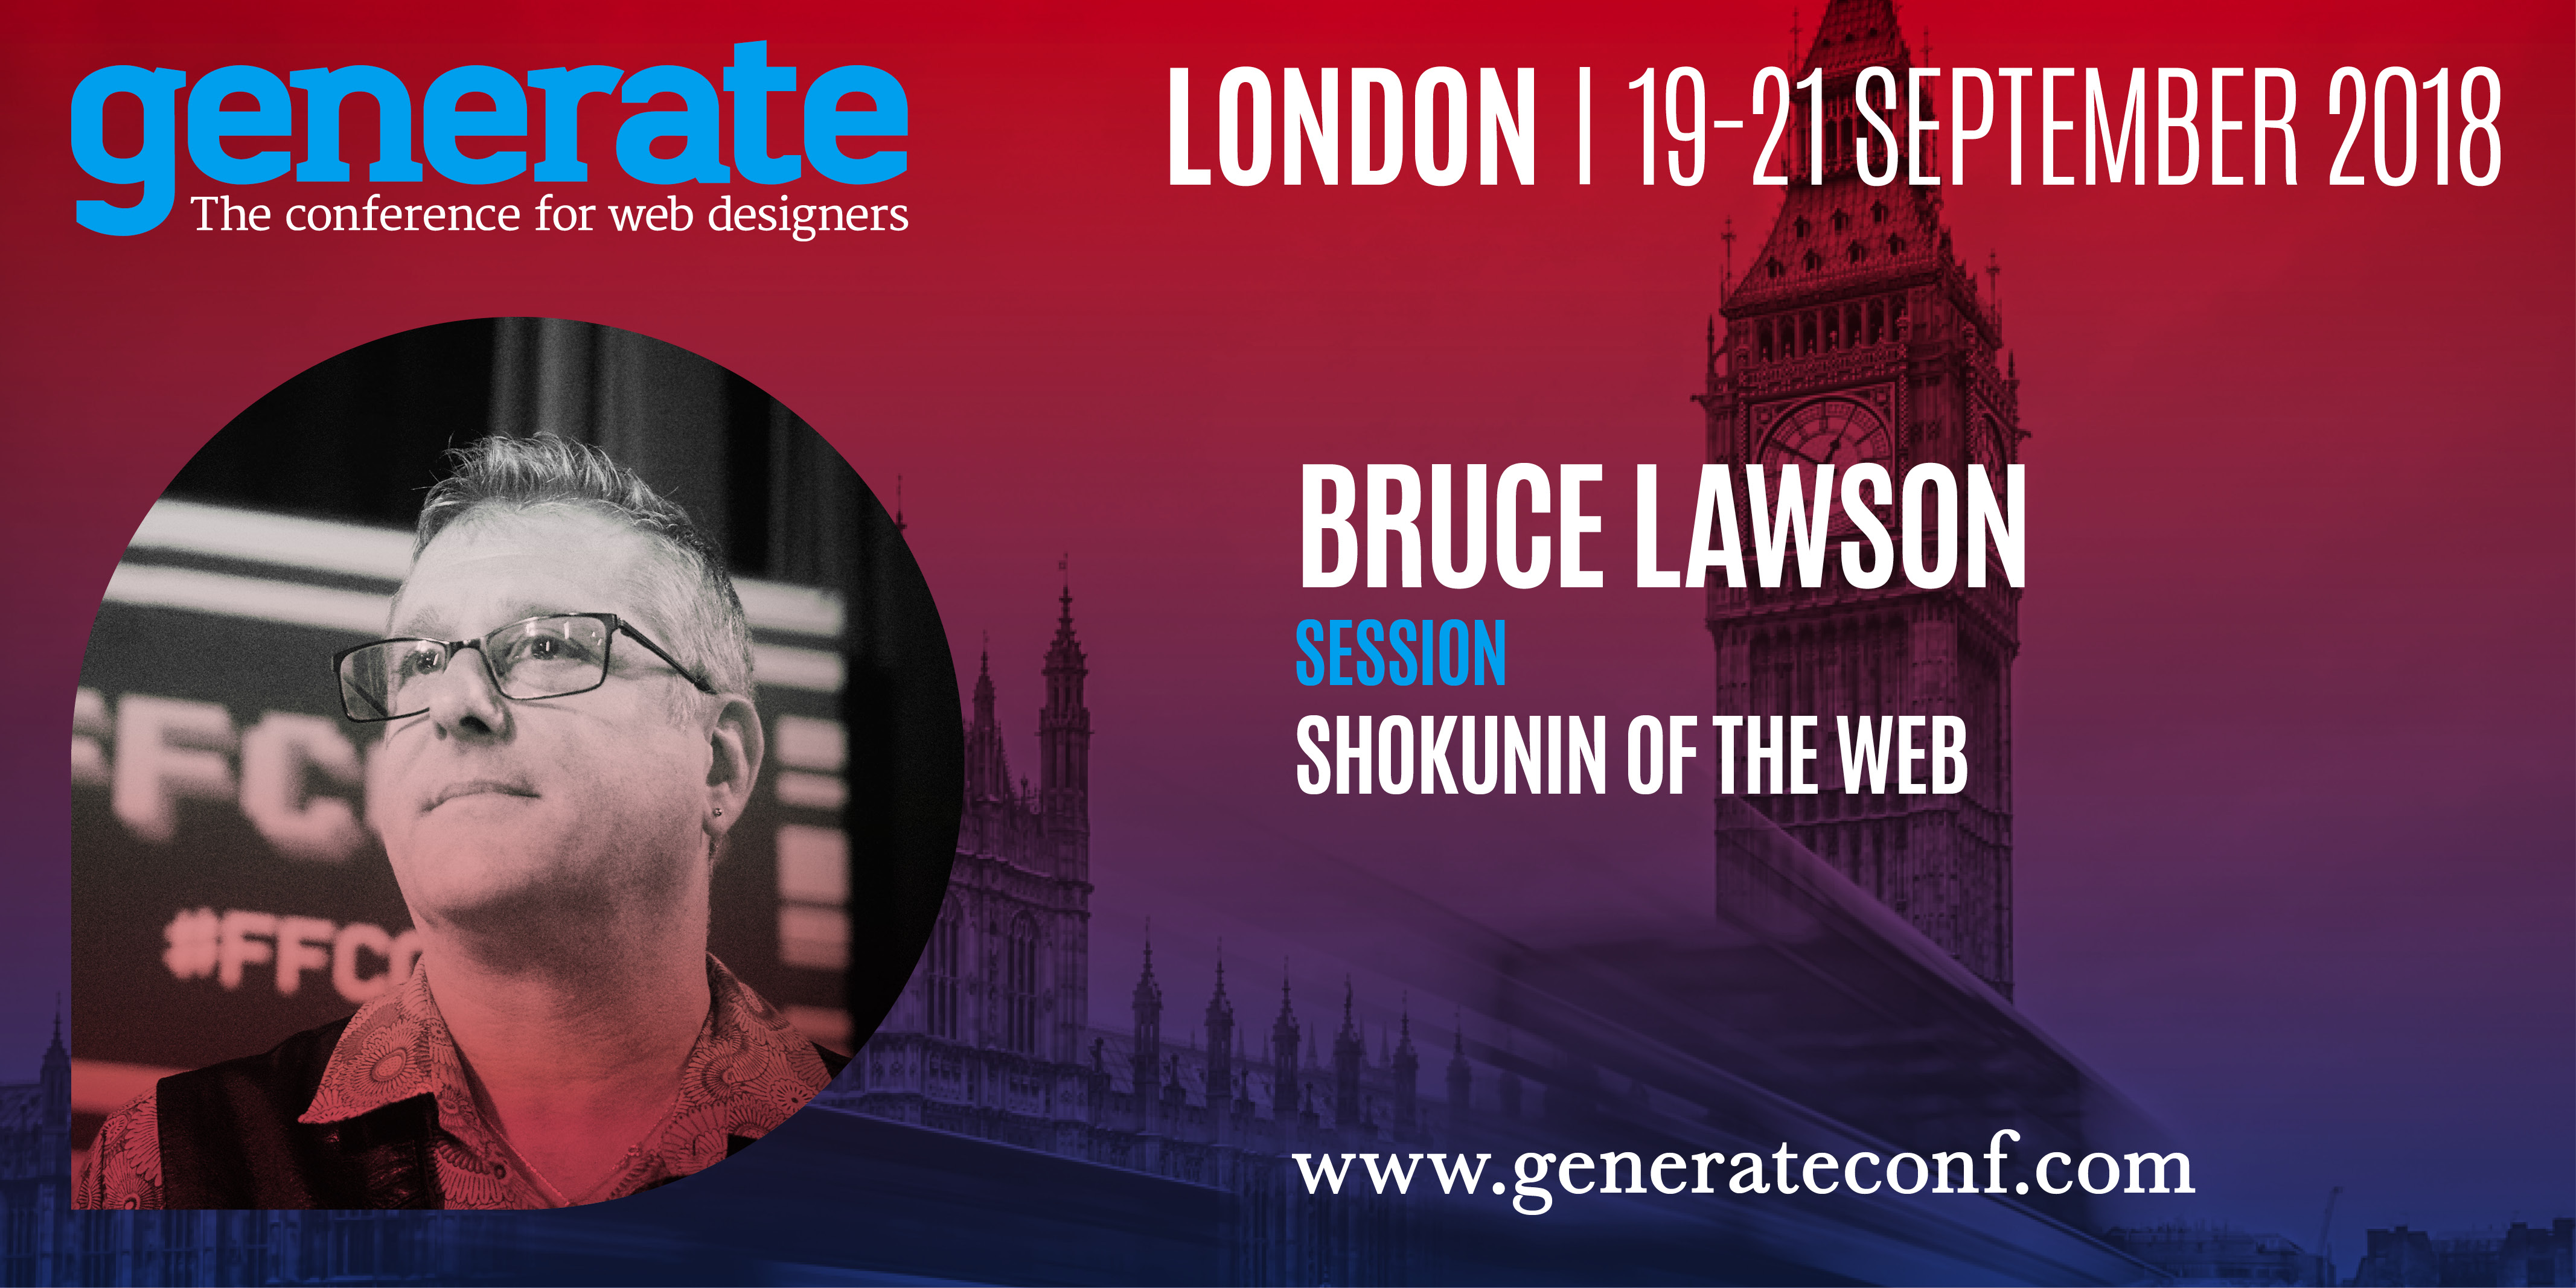 Bruce Lawson is giving his talk Shokunin of the Web at Generate London from 19-21 September 2018.